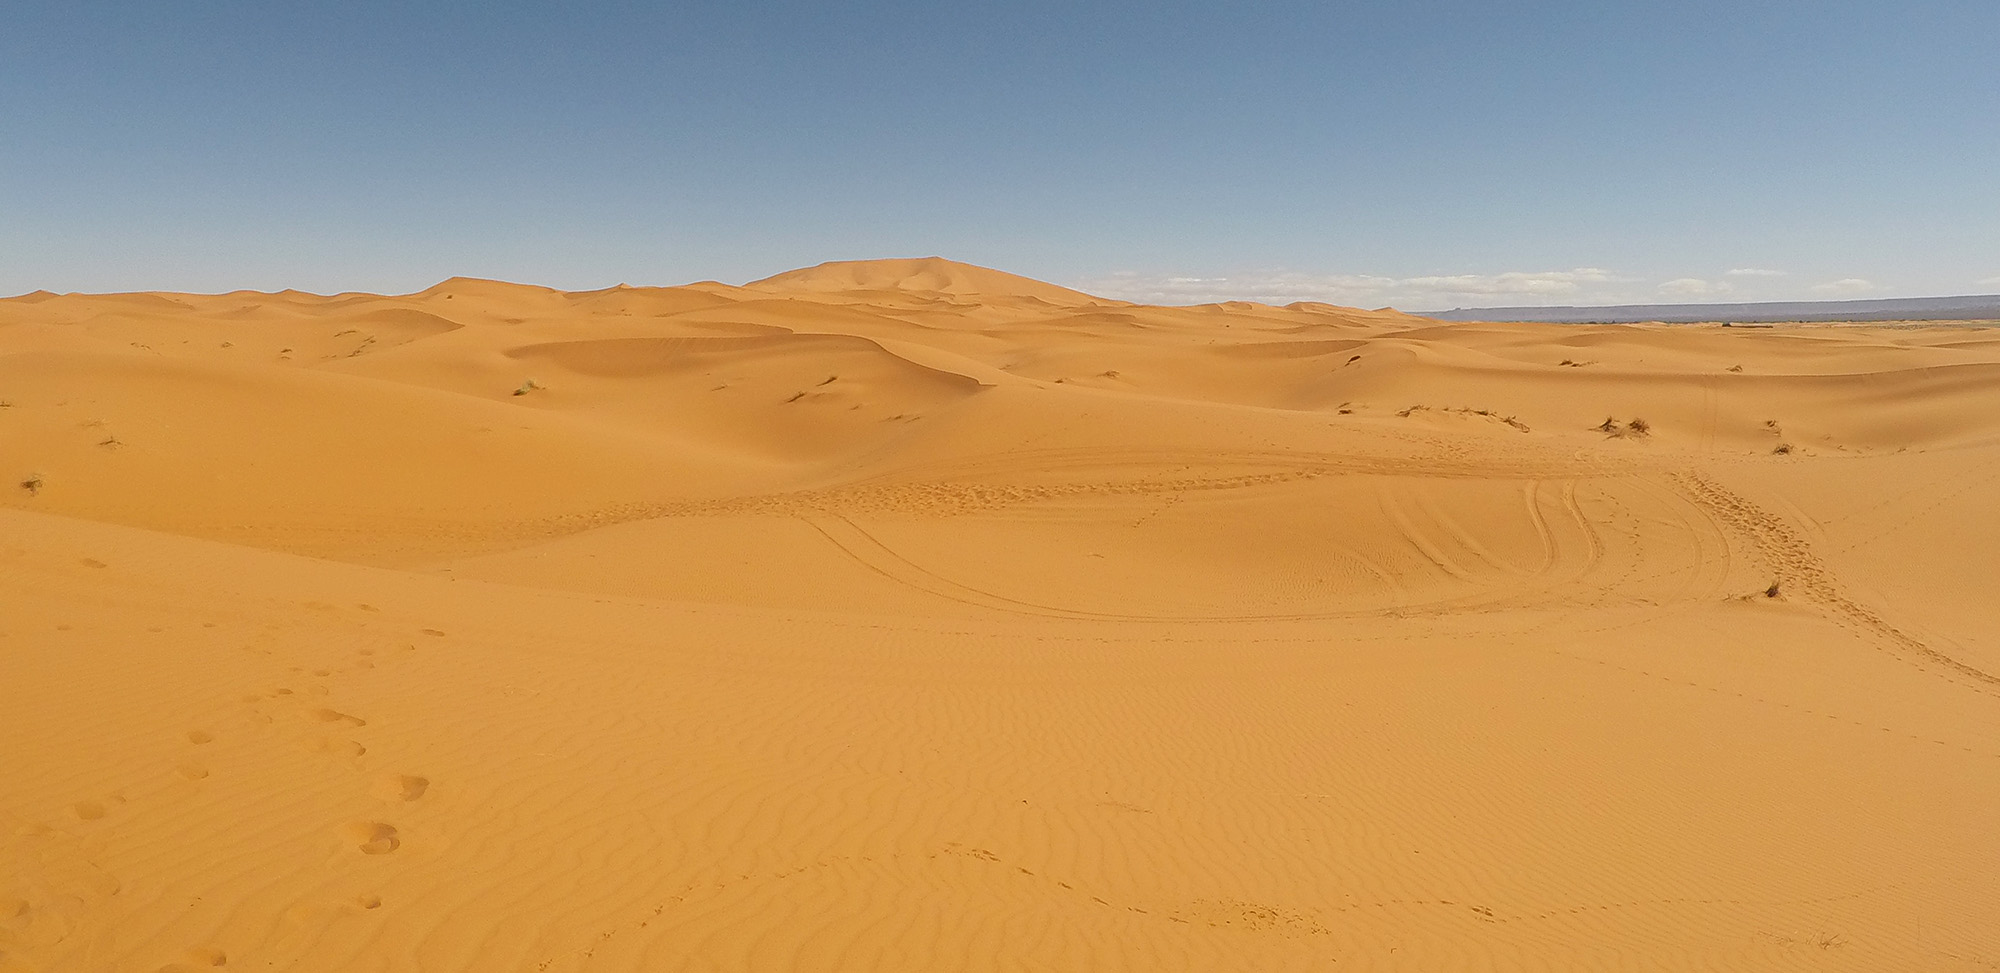 Dunes at MdS